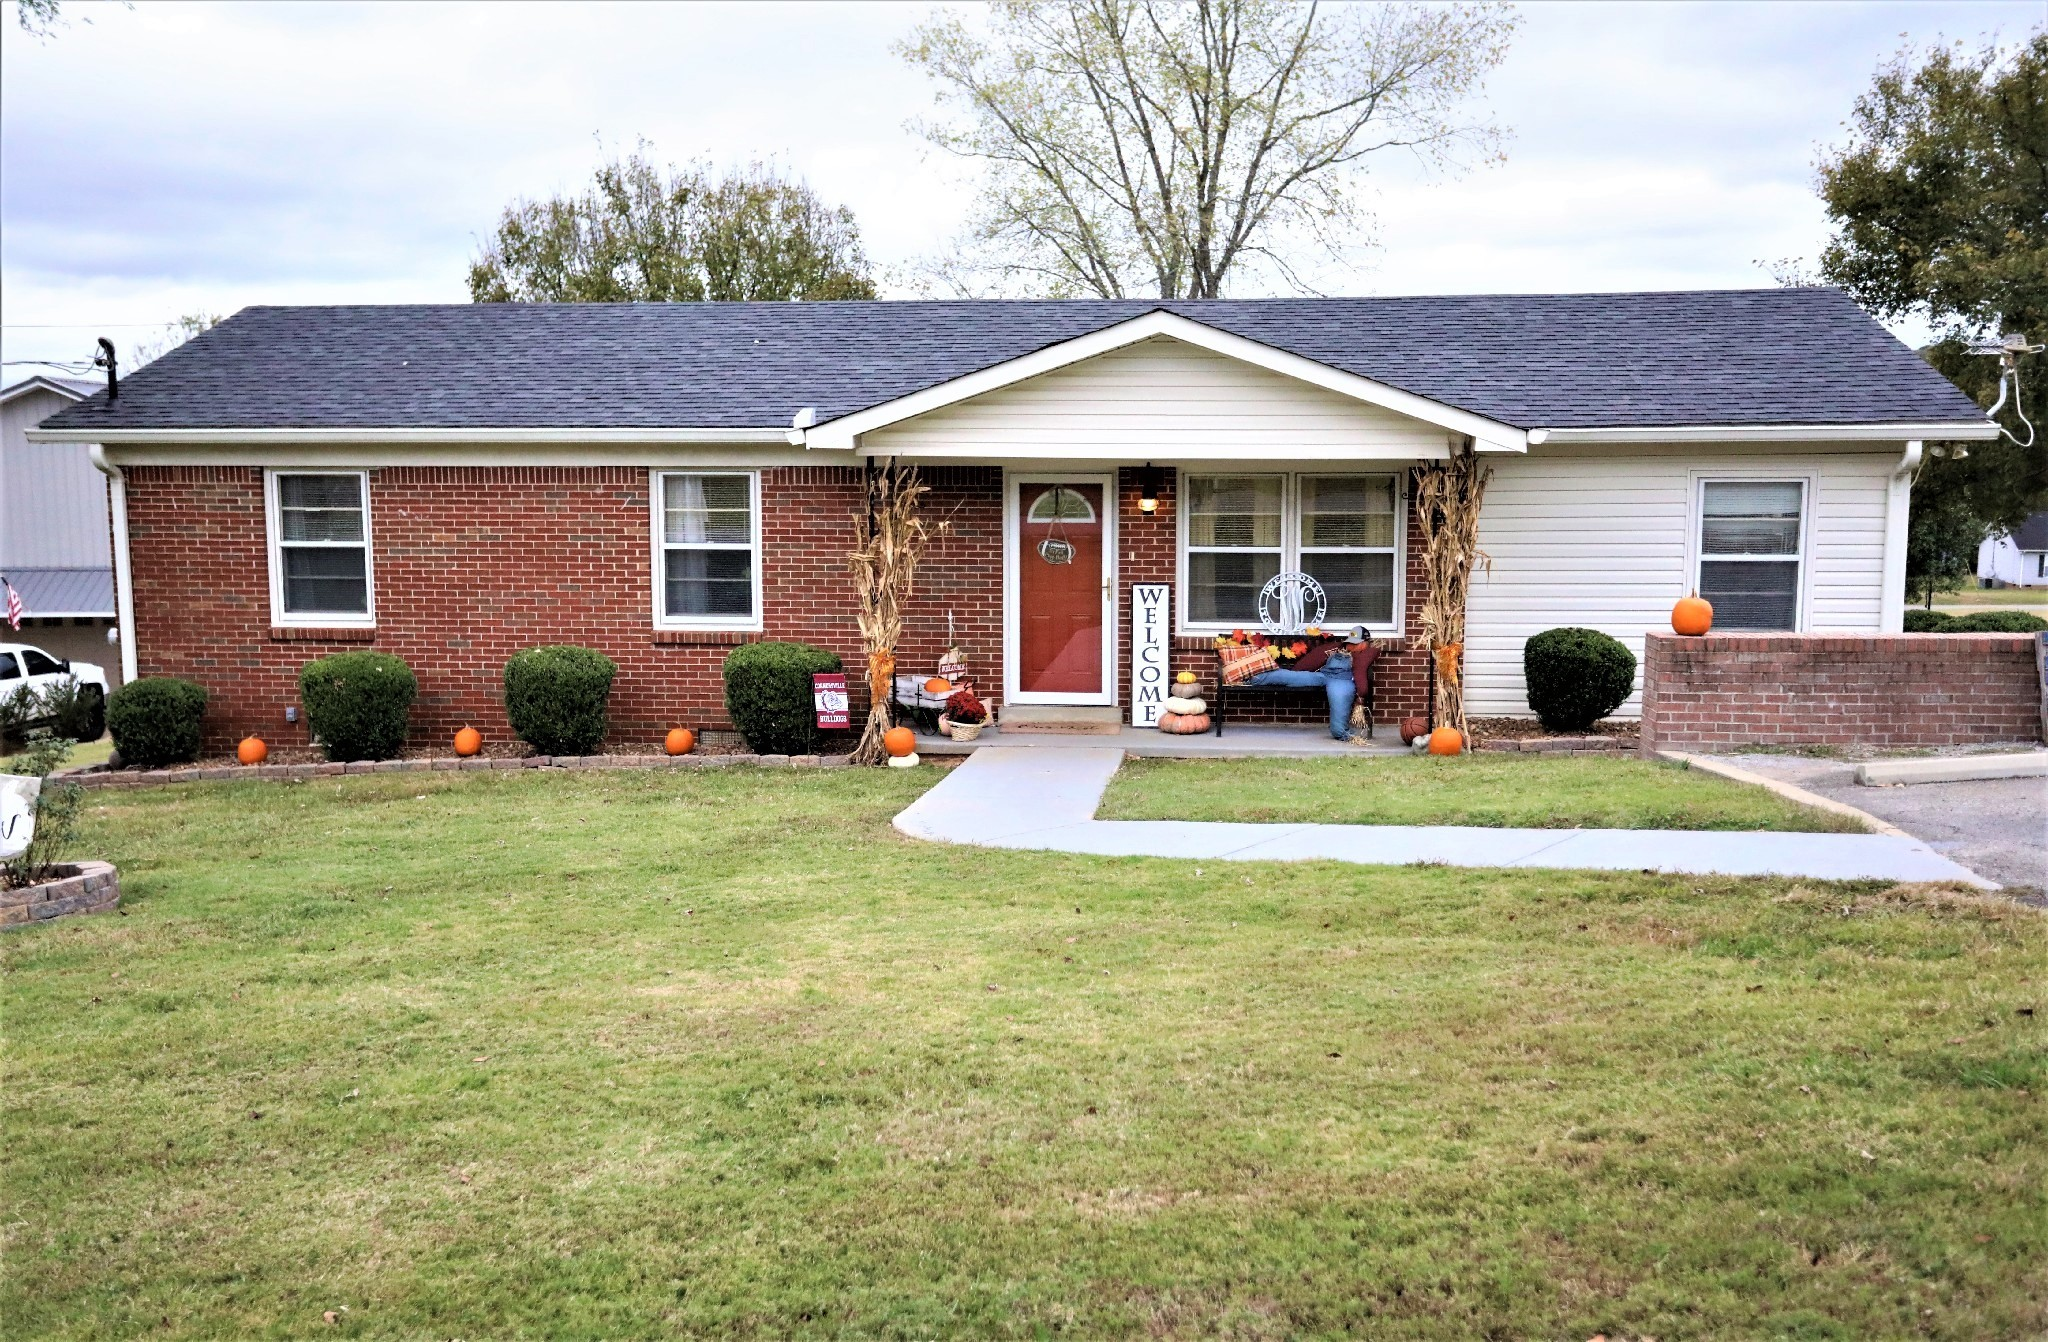 135 April Ln, Cornersville, TN 37047 - Cornersville, TN real estate listing